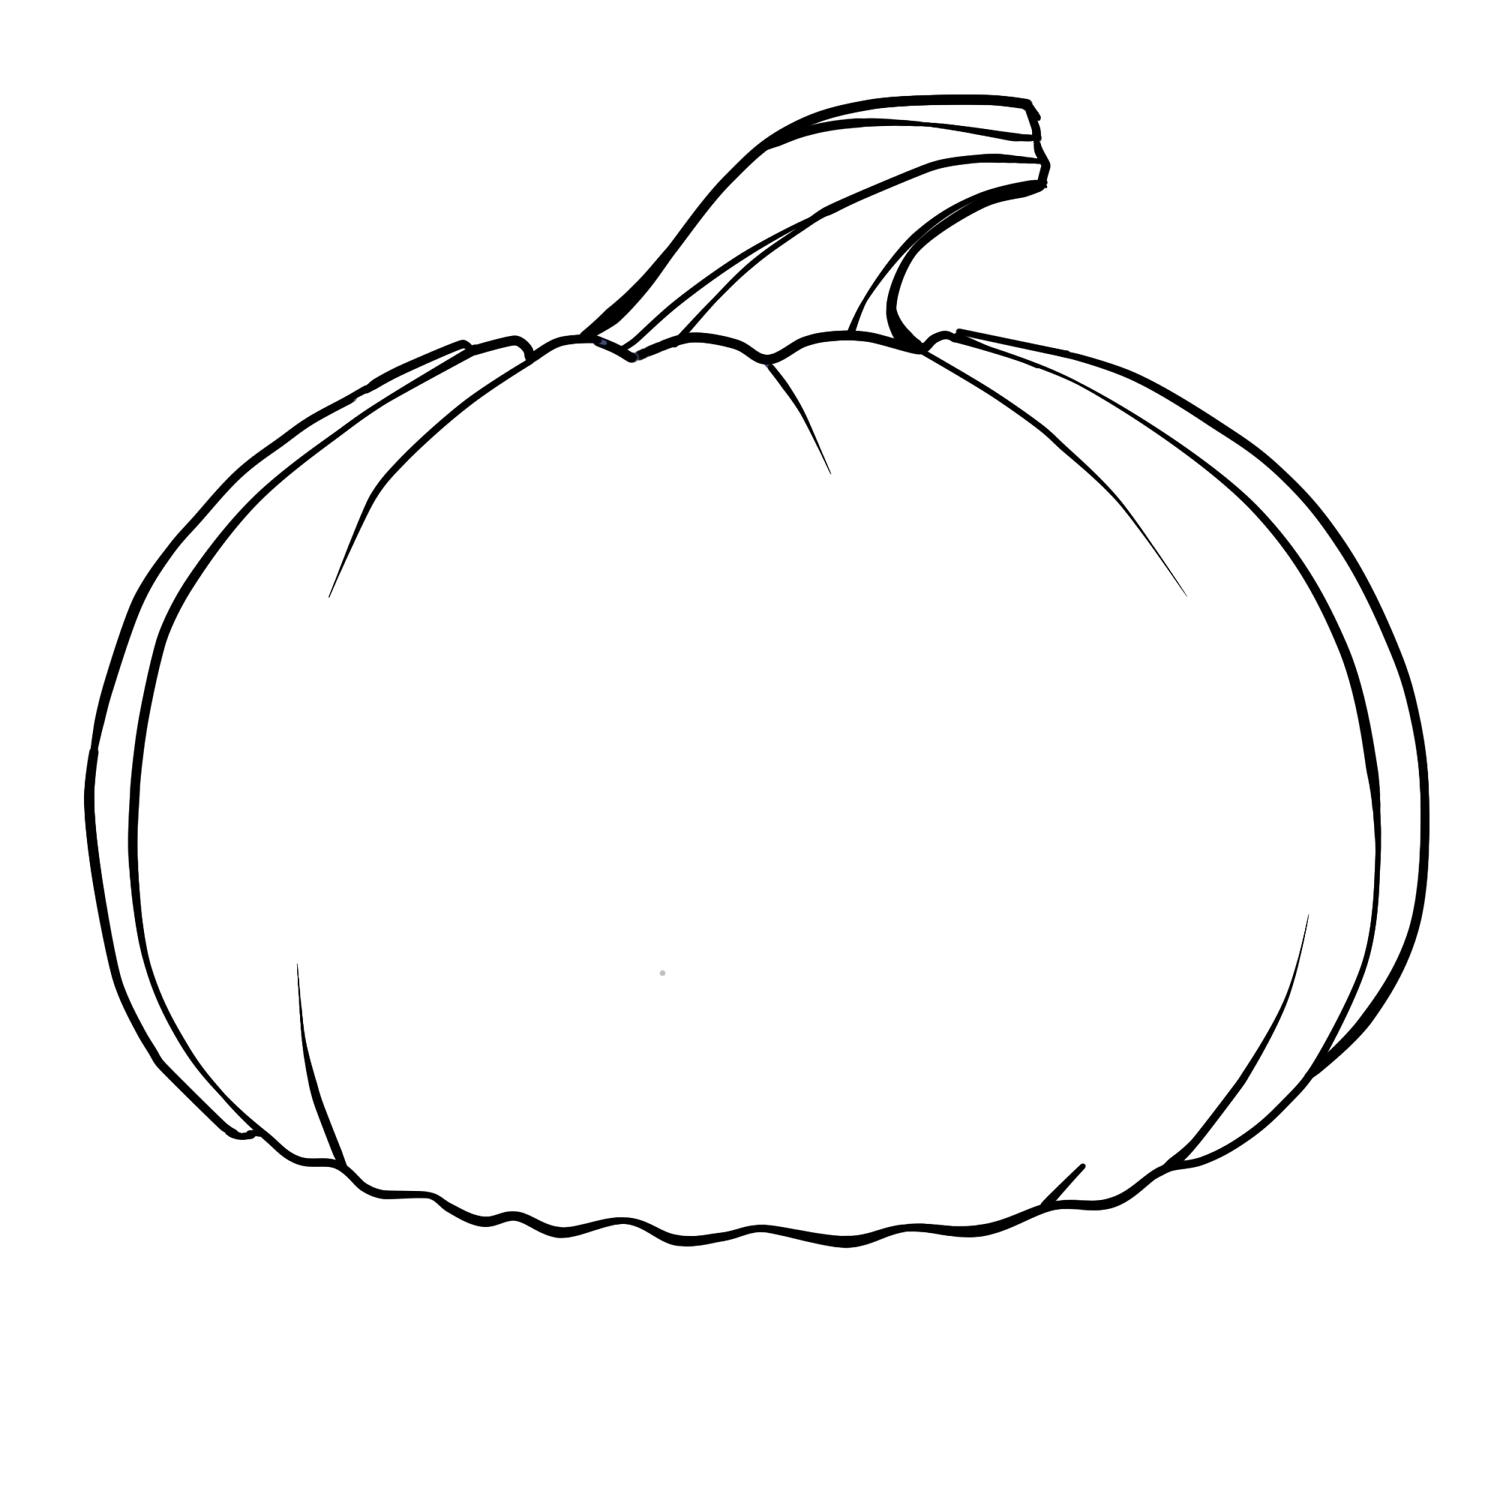 Striking image with regard to jackolantern printable